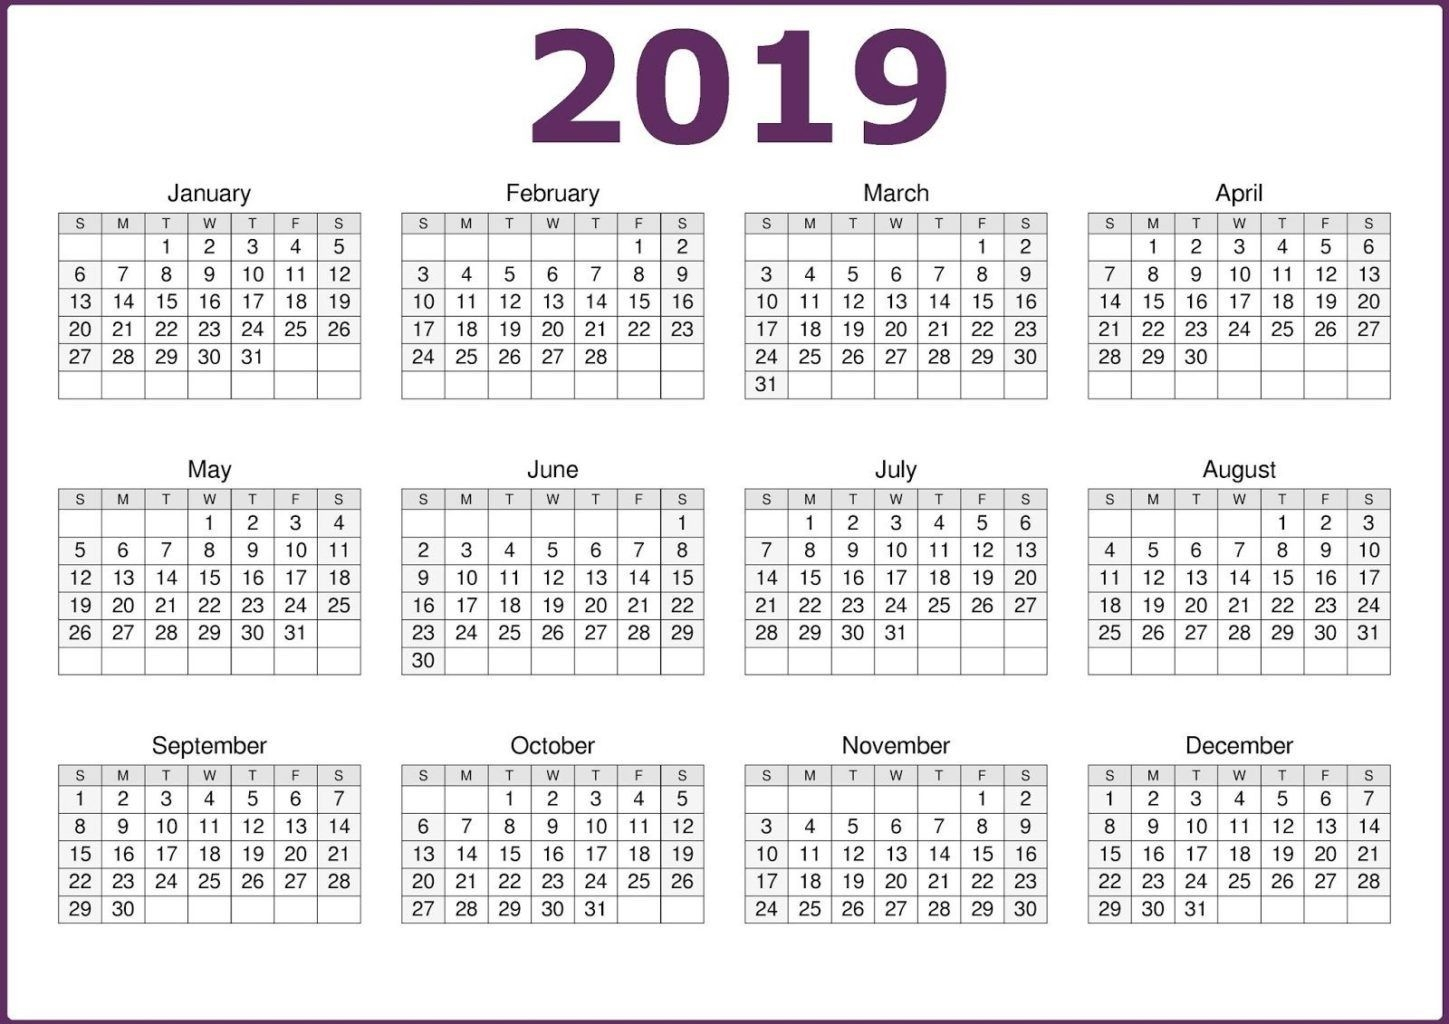 2019 One Page Calendar Printable | 2019 Calendars | 12 Month-Blank Calendar 4 Months One Page